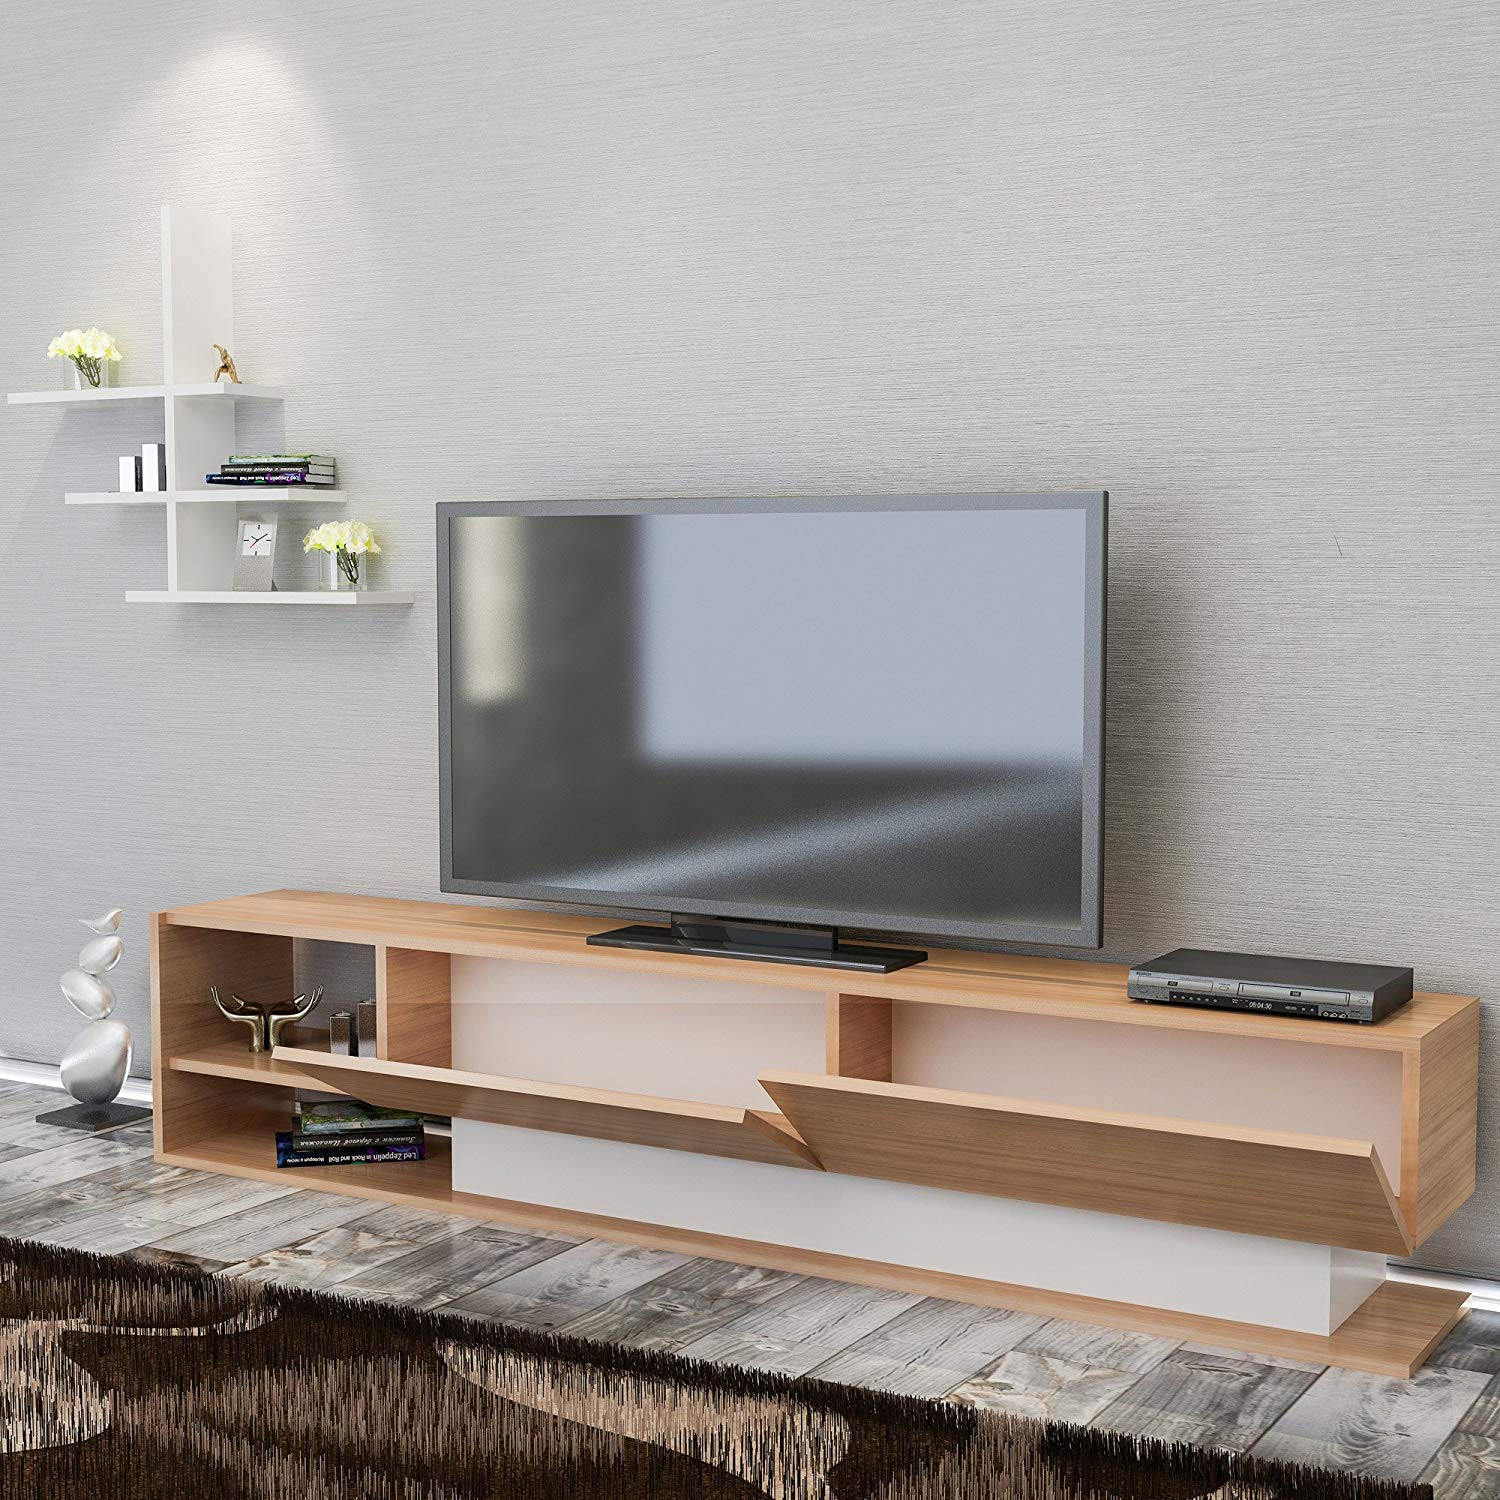 Ordinaire Get Quotations · LaModaHome Tv Stand Unit   Brown White Living Room Simple  Functional Elegant Stand Storage Multi Function